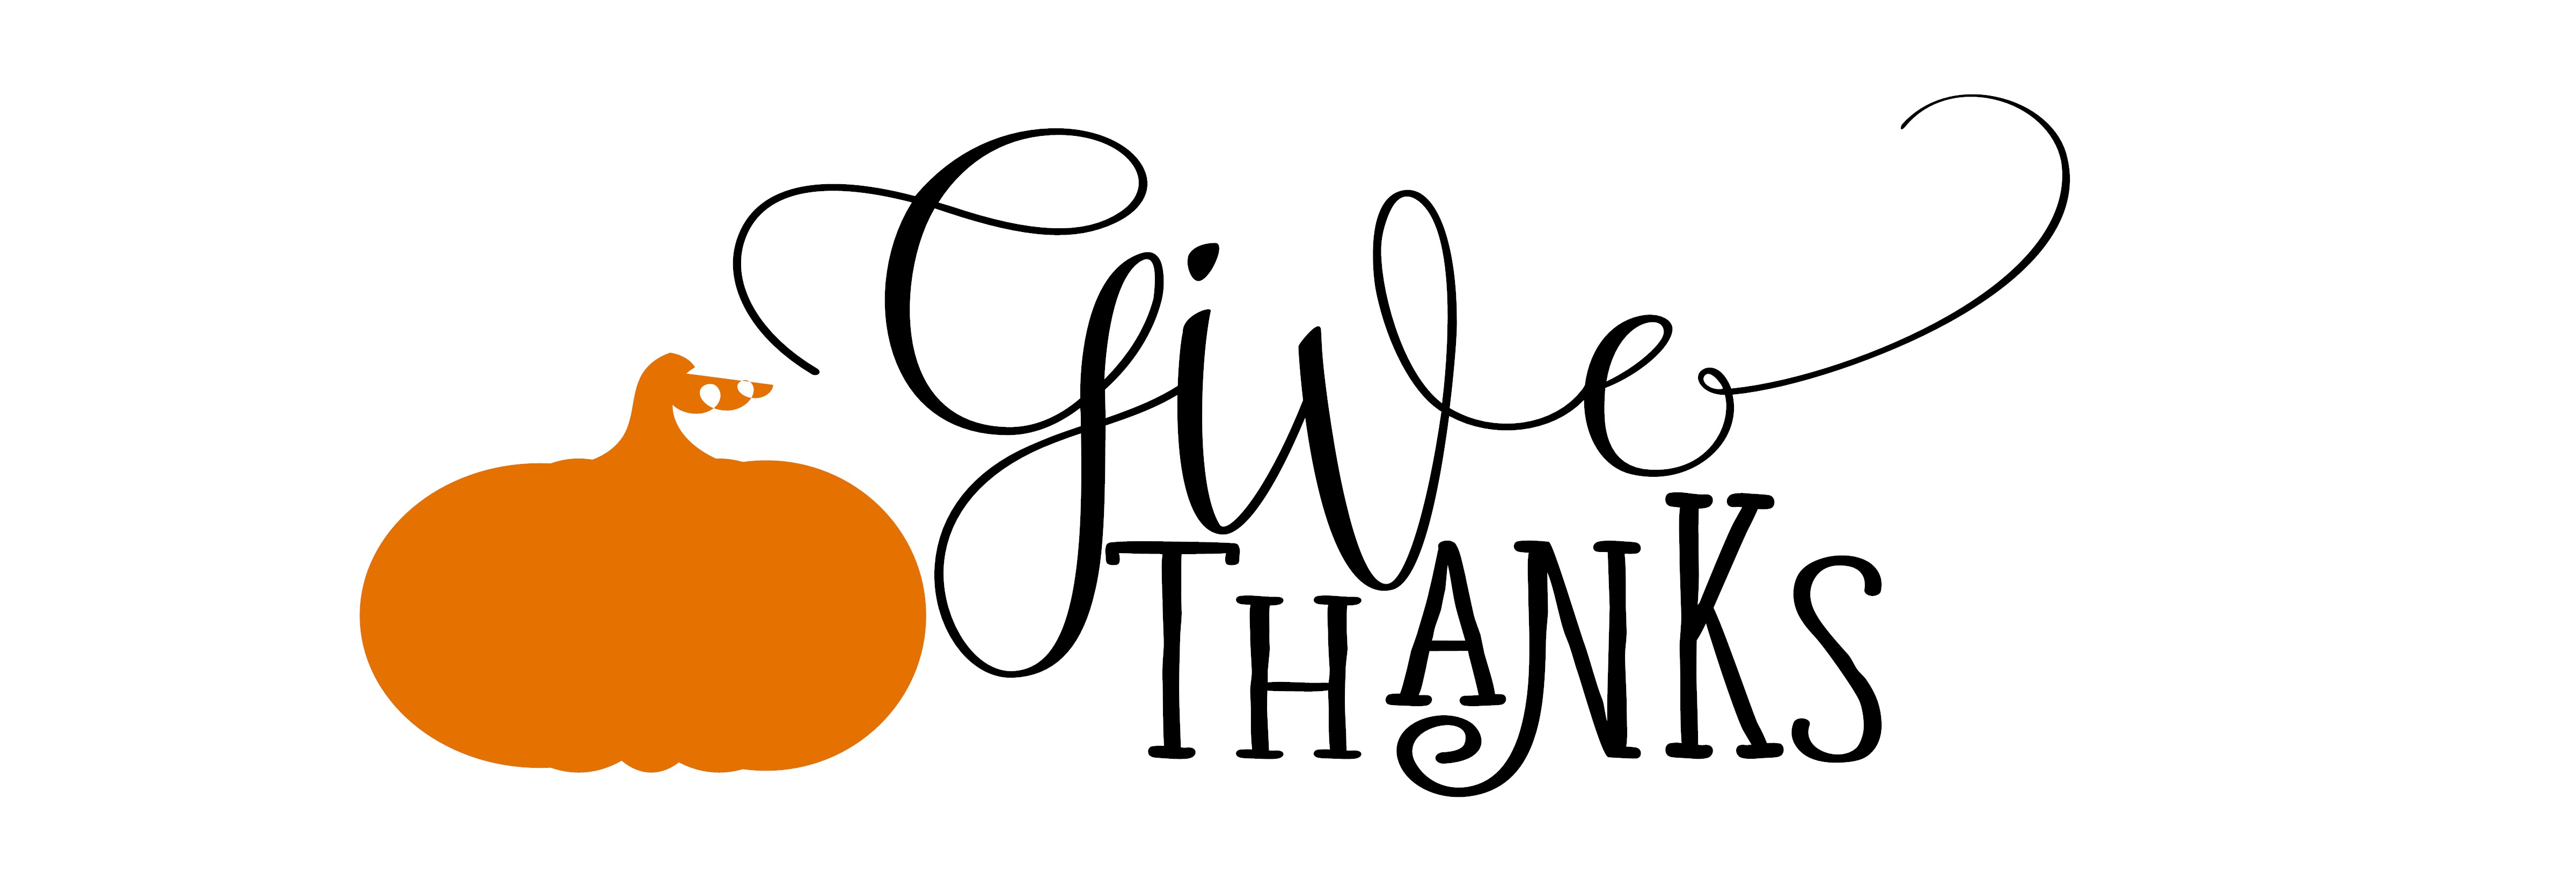 CB-Give Thanks